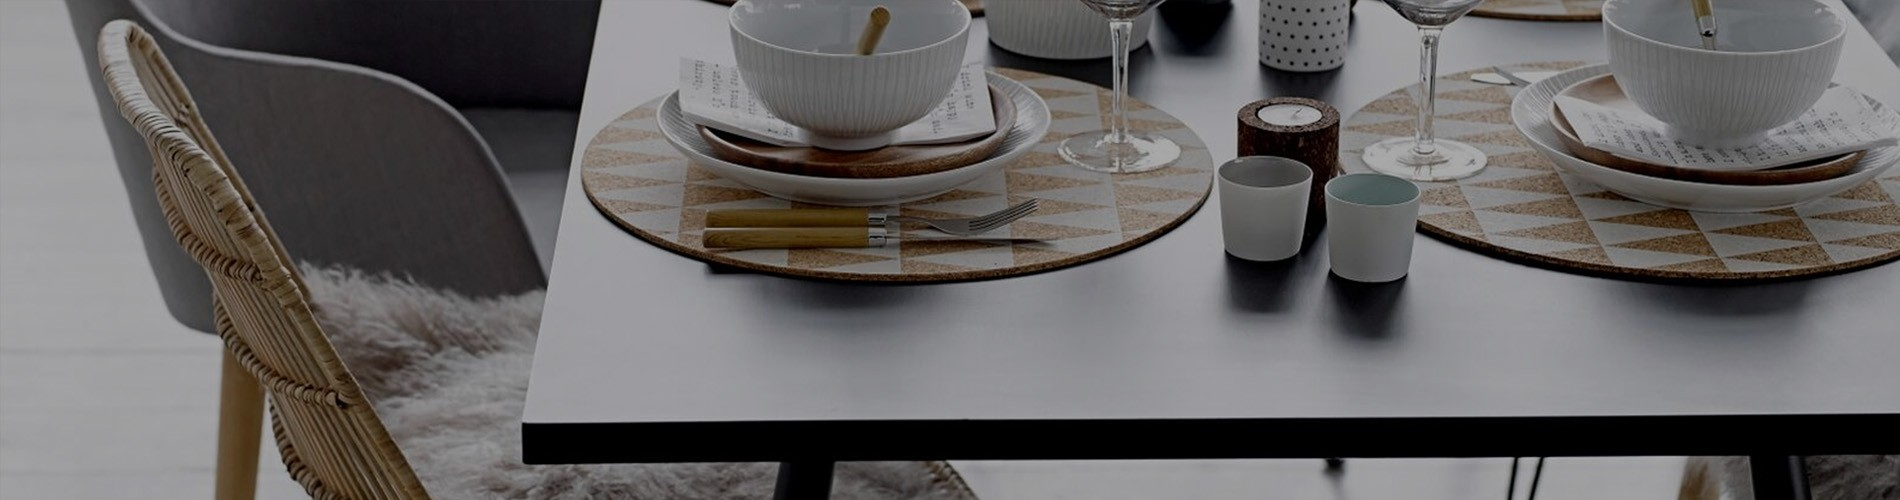 Stunning cutlery for any modern kitchen & home